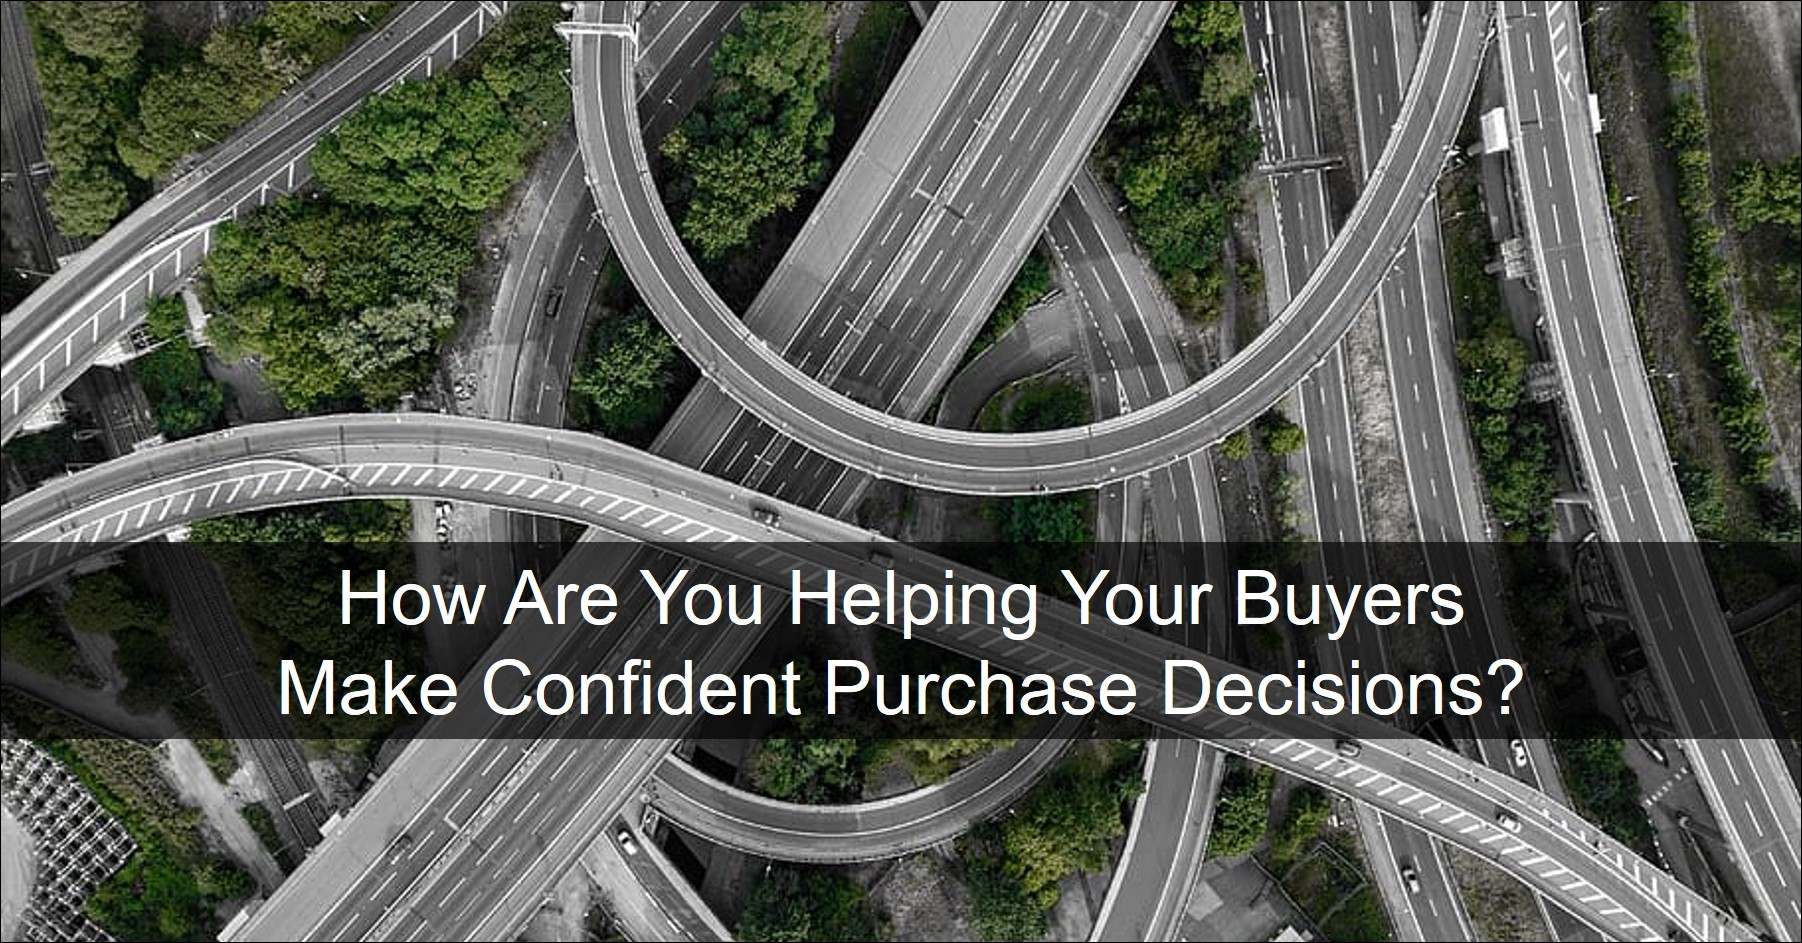 How do you make #b2b buyers see their problem, care about fixing it and confident you can do so #b2bsales